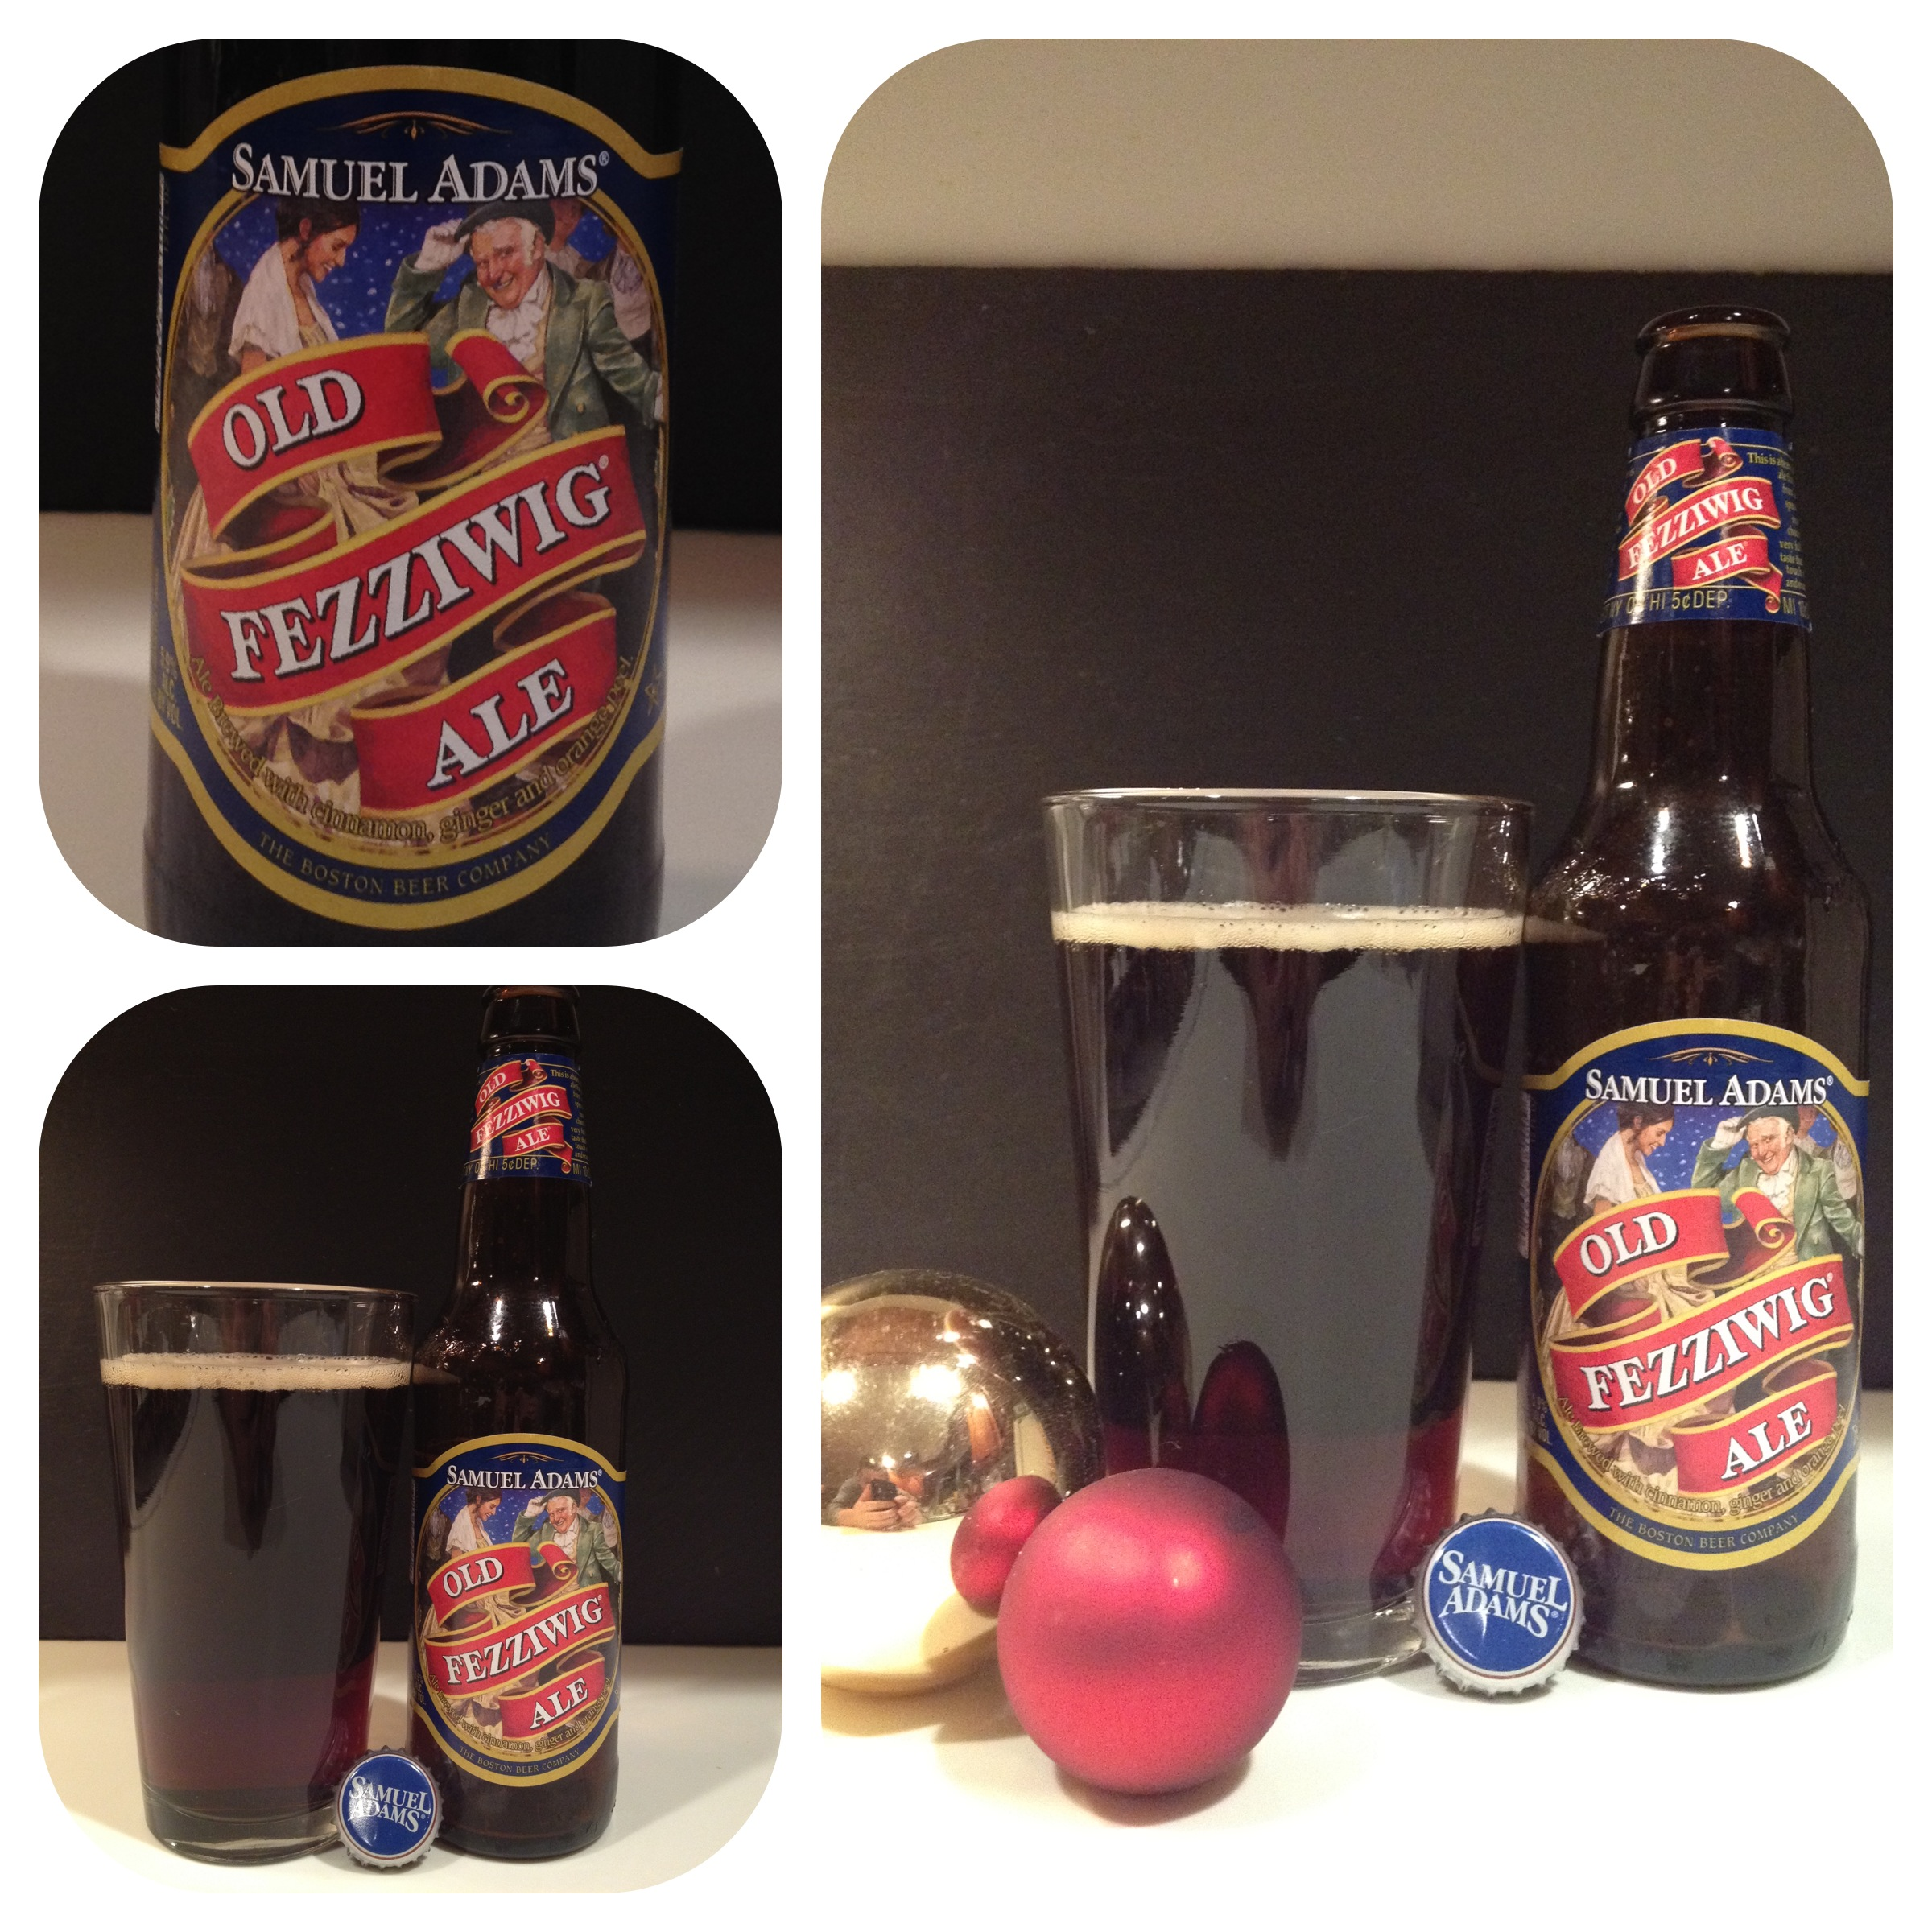 Sam Adams Old Fezziwig - Poured in a glass